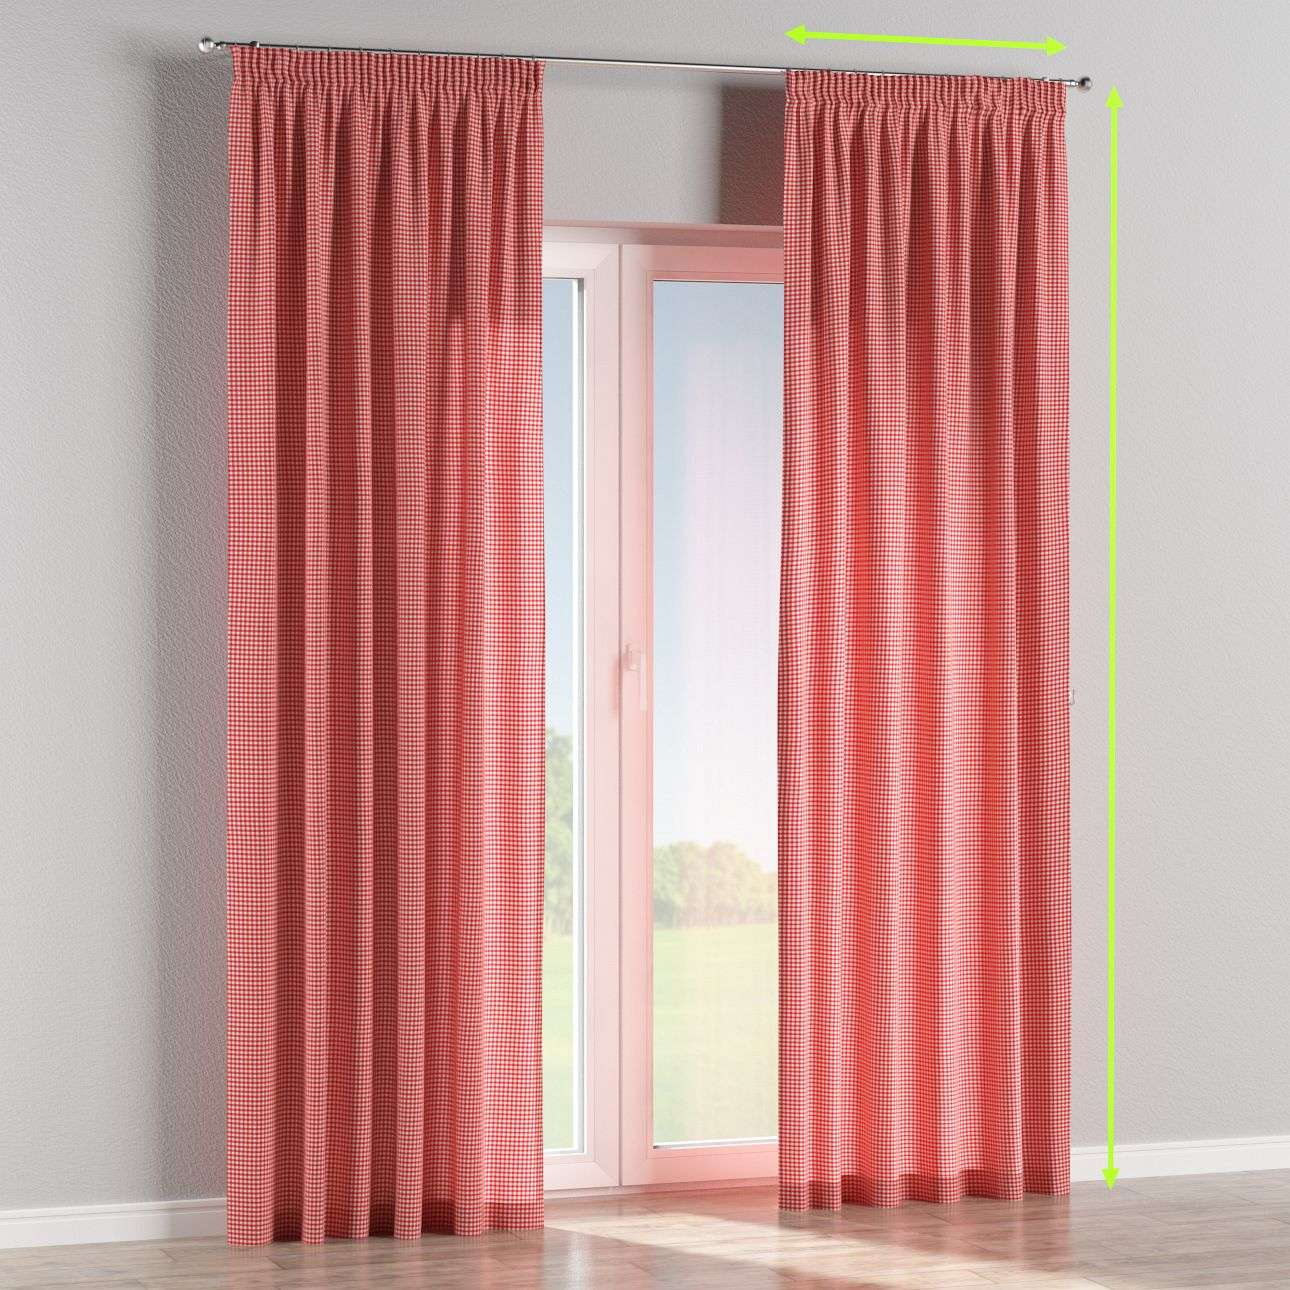 Pencil pleat curtains in collection Quadro, fabric: 136-15